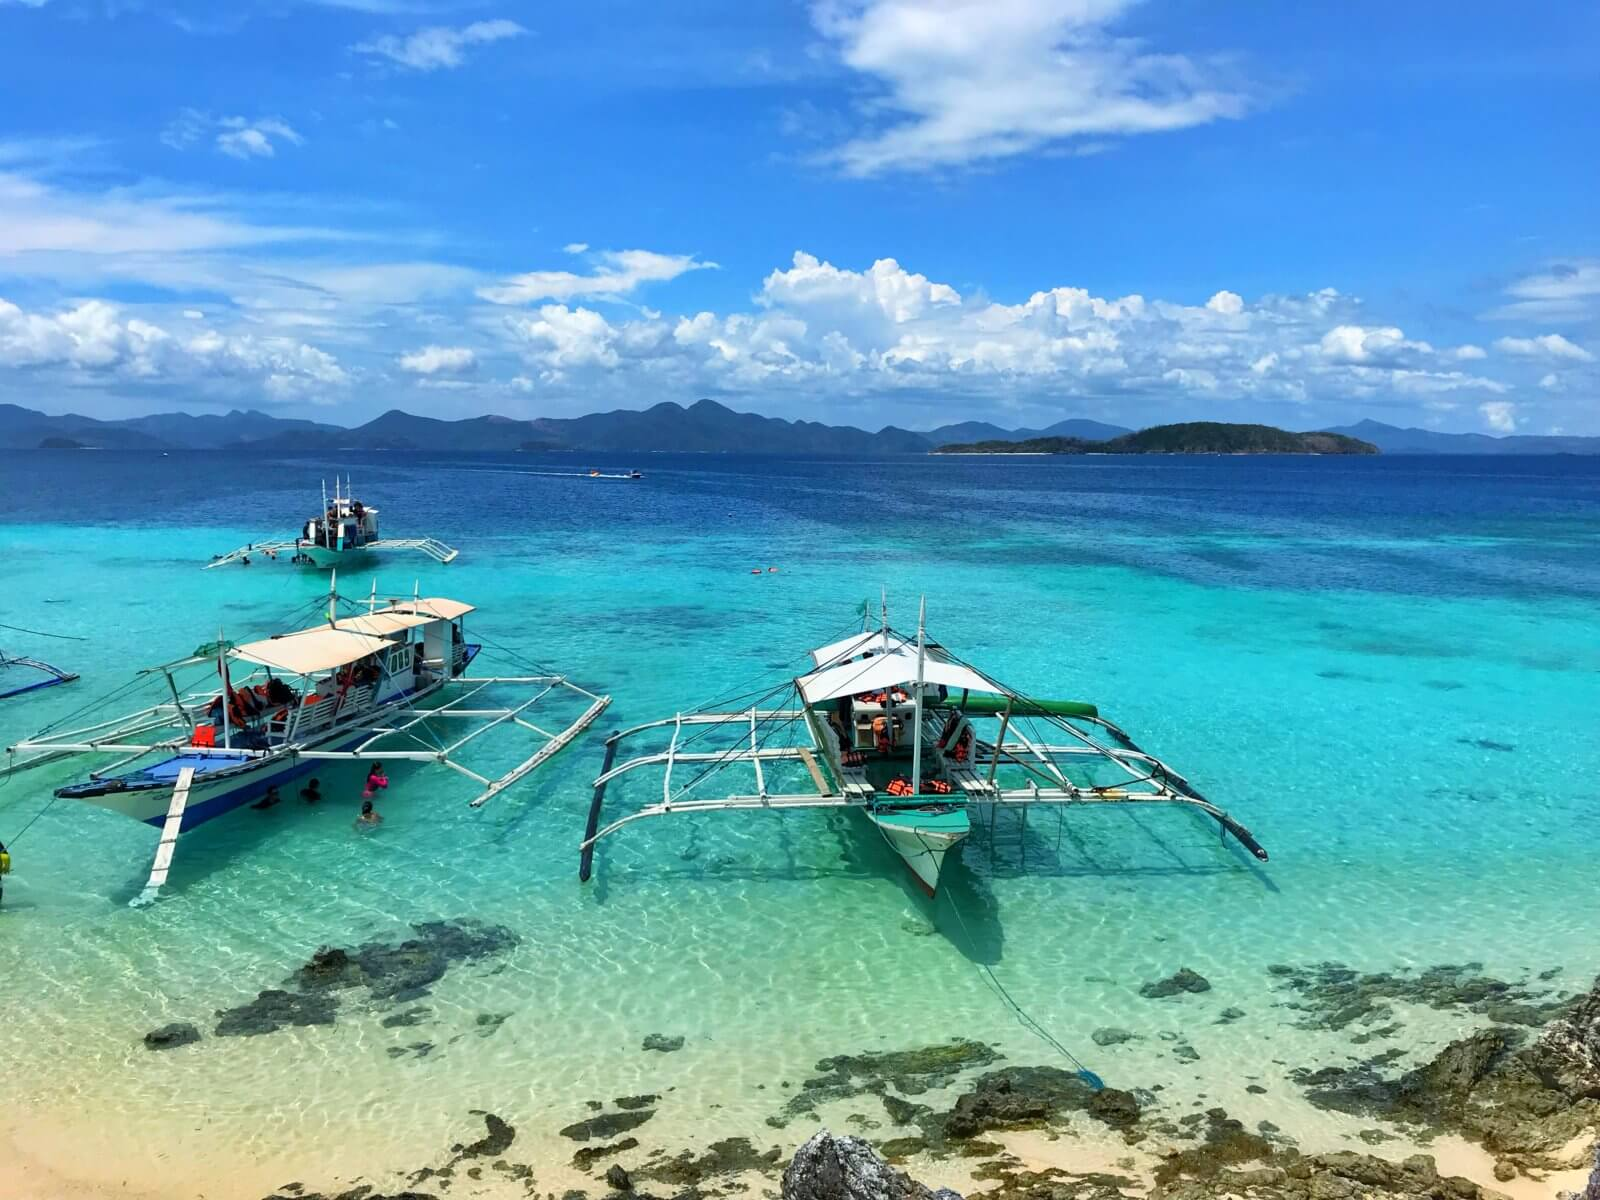 Island Hoping in Coron